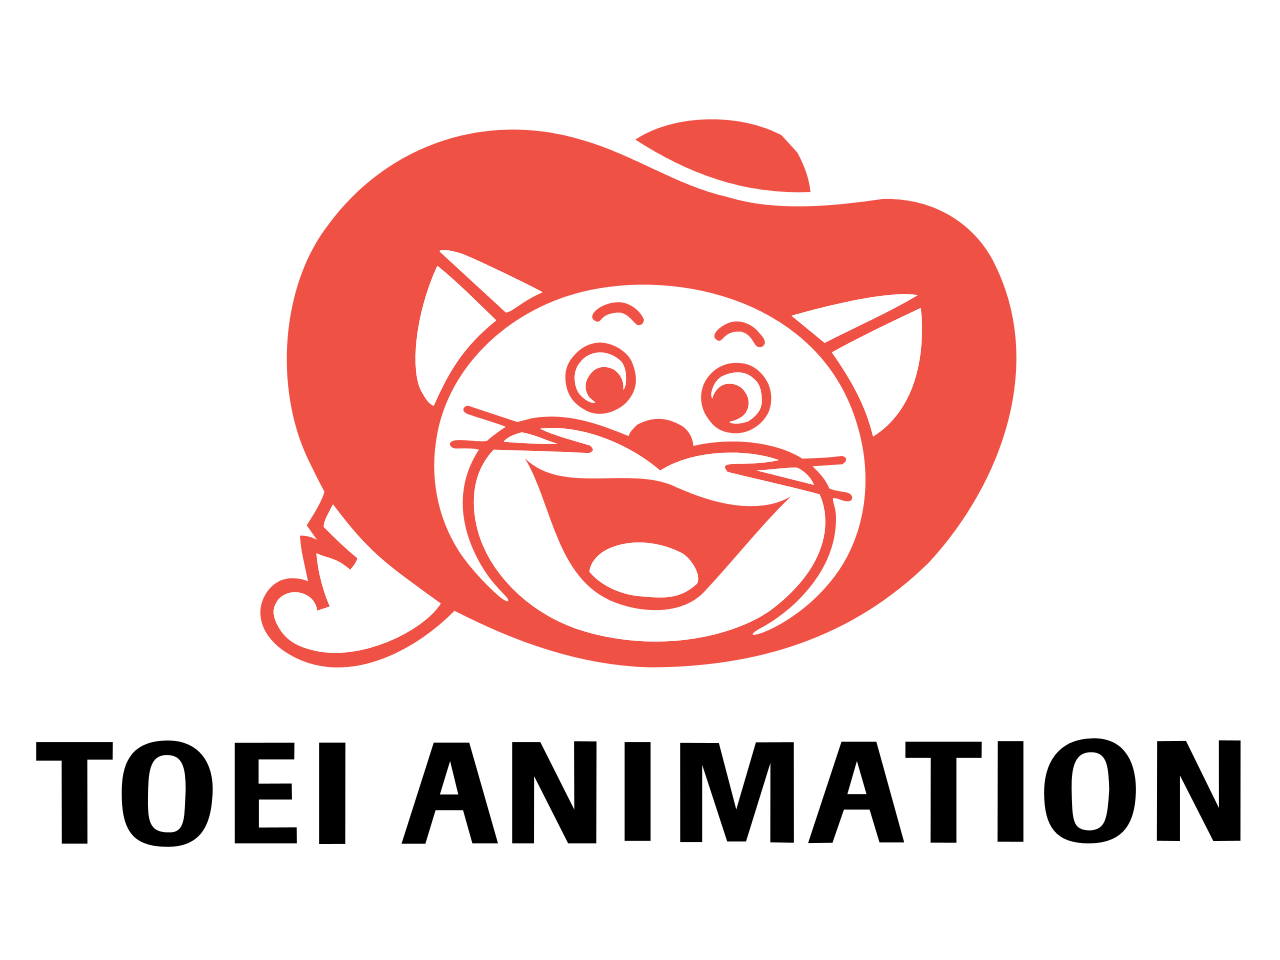 1. Toei Animation logo